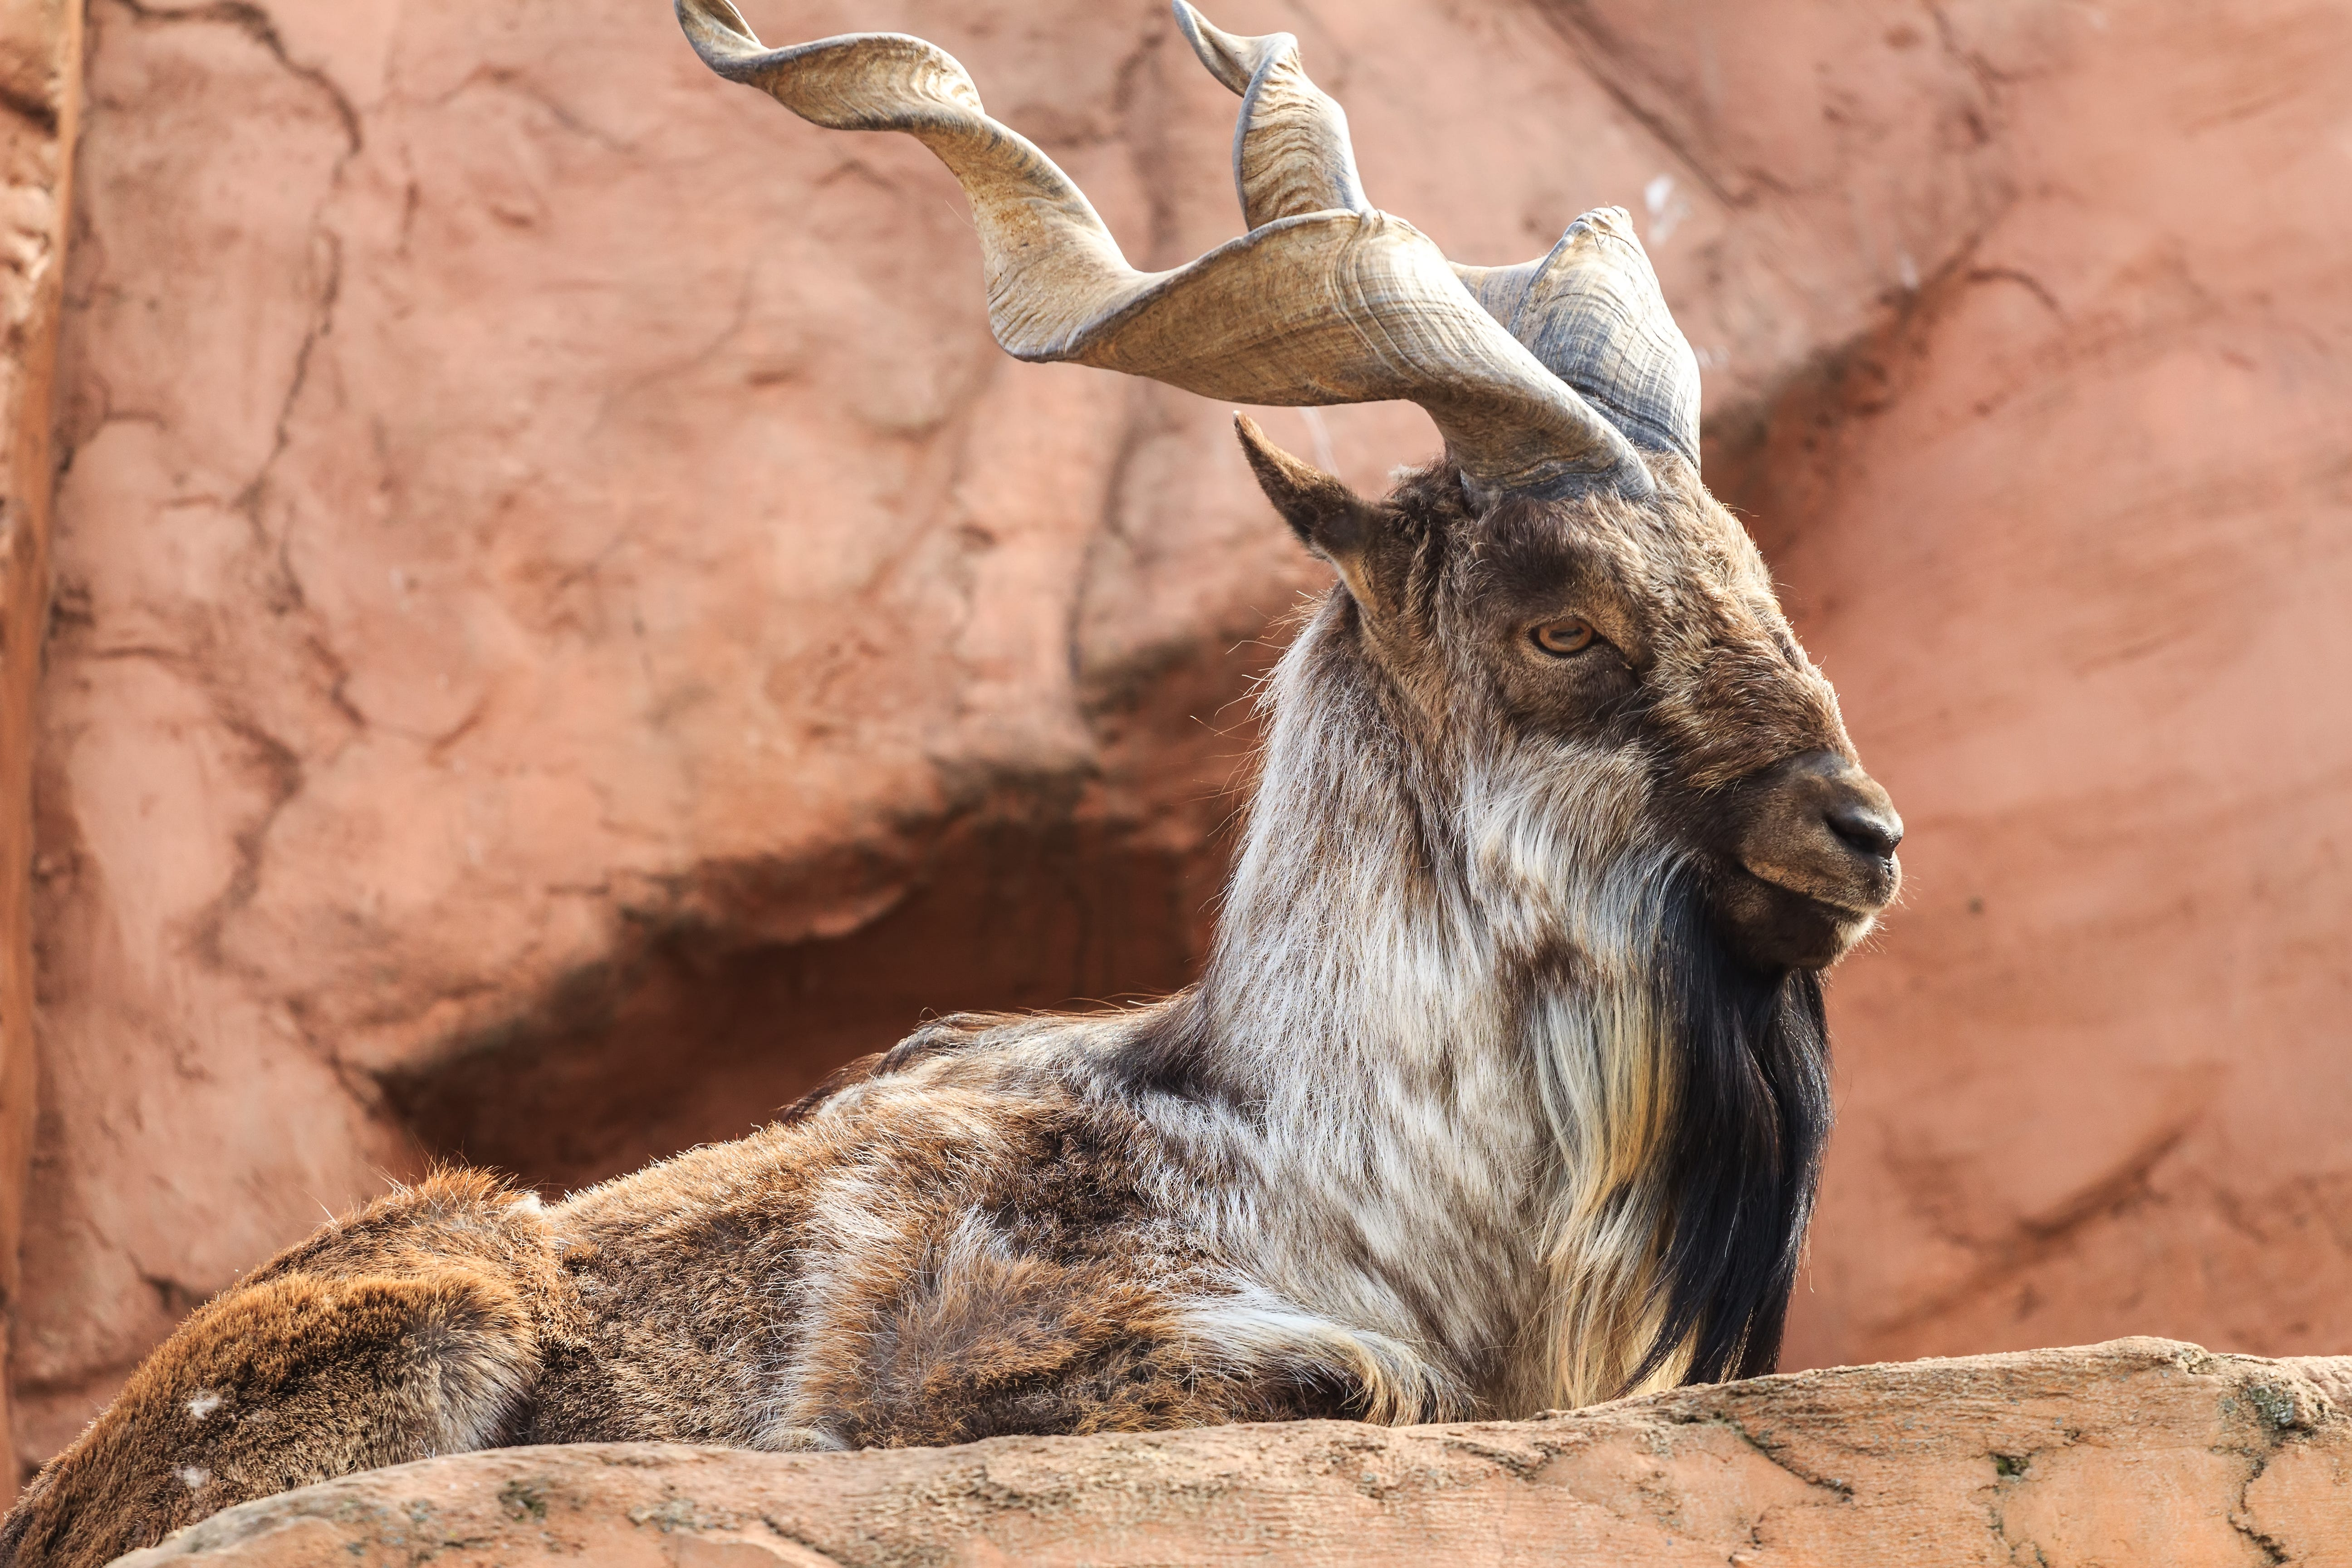 Endangered Markhor Watches Terrain Lying On Red Rock Abc News Gocom Texas Trophy Hunter Kills Pakistan Rare Goat Markhor Gets Backlash